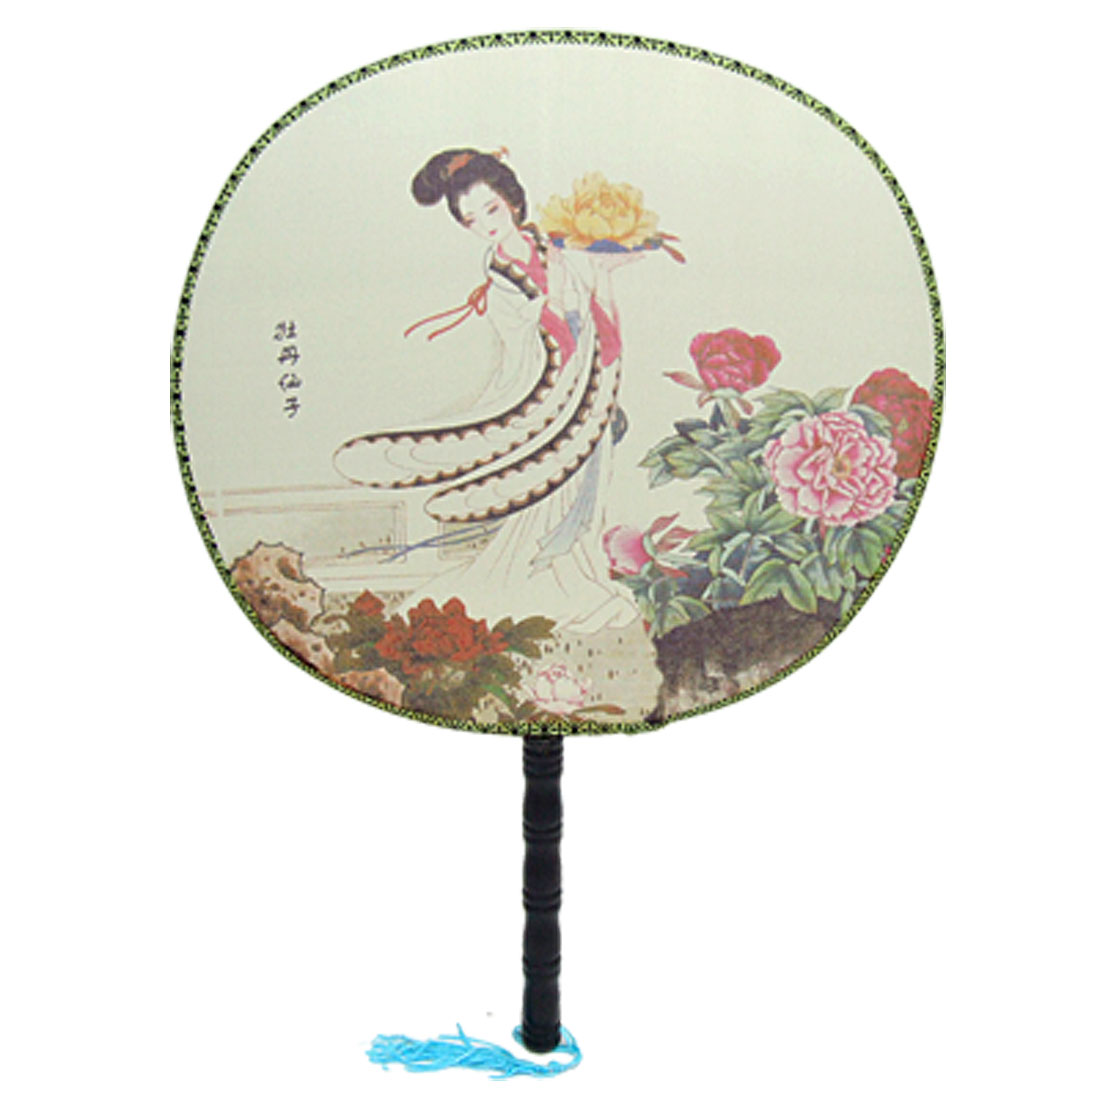 Peony Faery Picture Traditional Fabric Fan for Lady